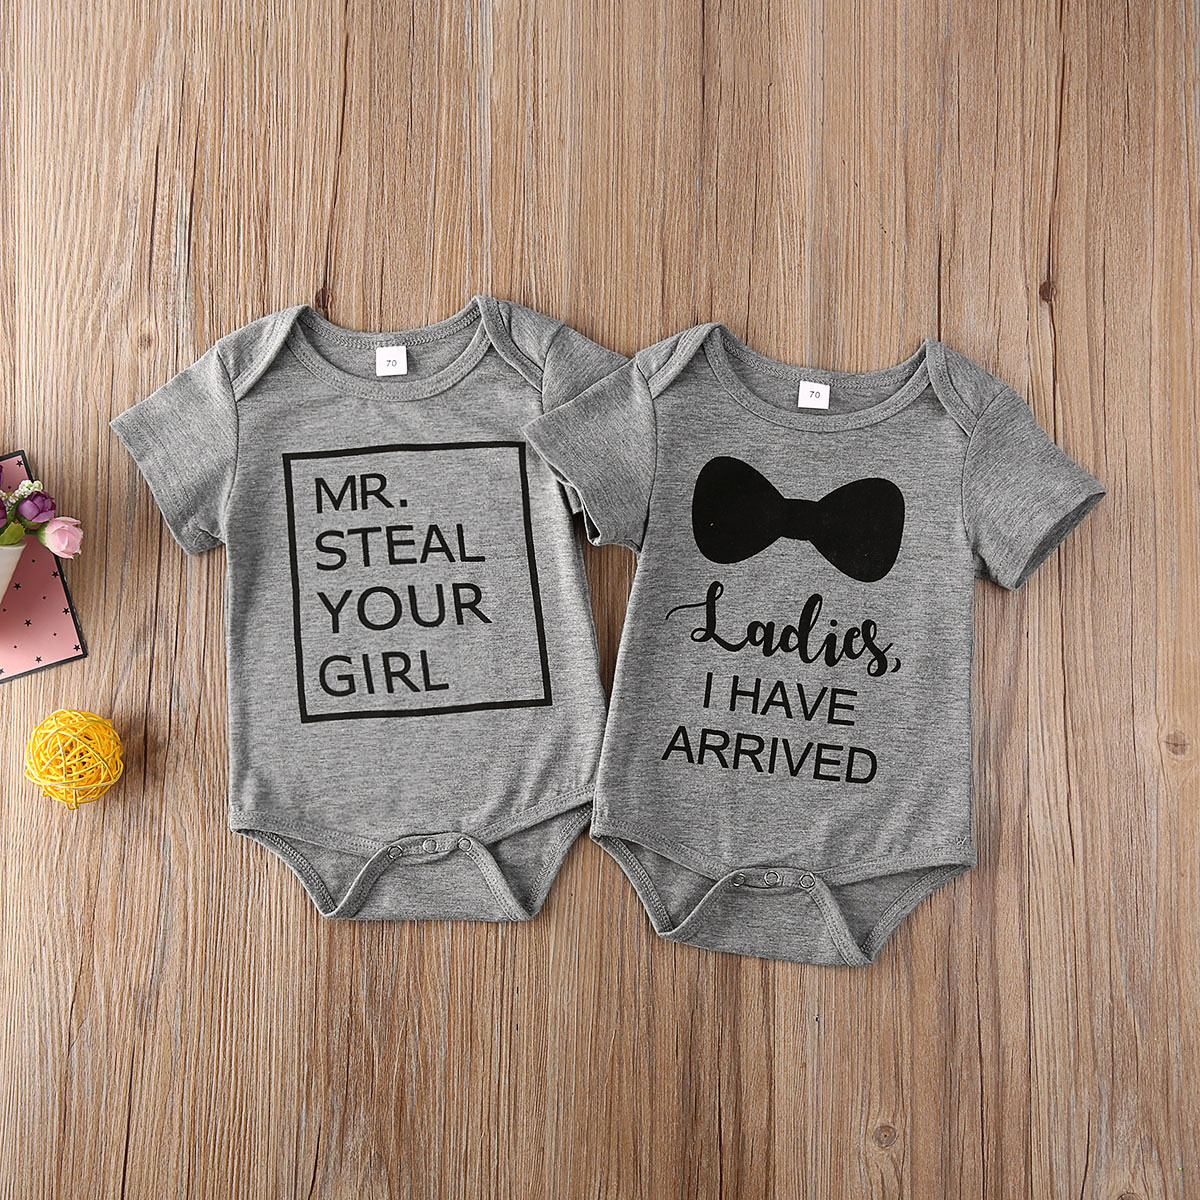 0-24M Newborn Toddler Kids Baby Boy Bodysuits Letter Print Grey Summer Outfits Clothes Short Sleeve Jumpsuits Tops